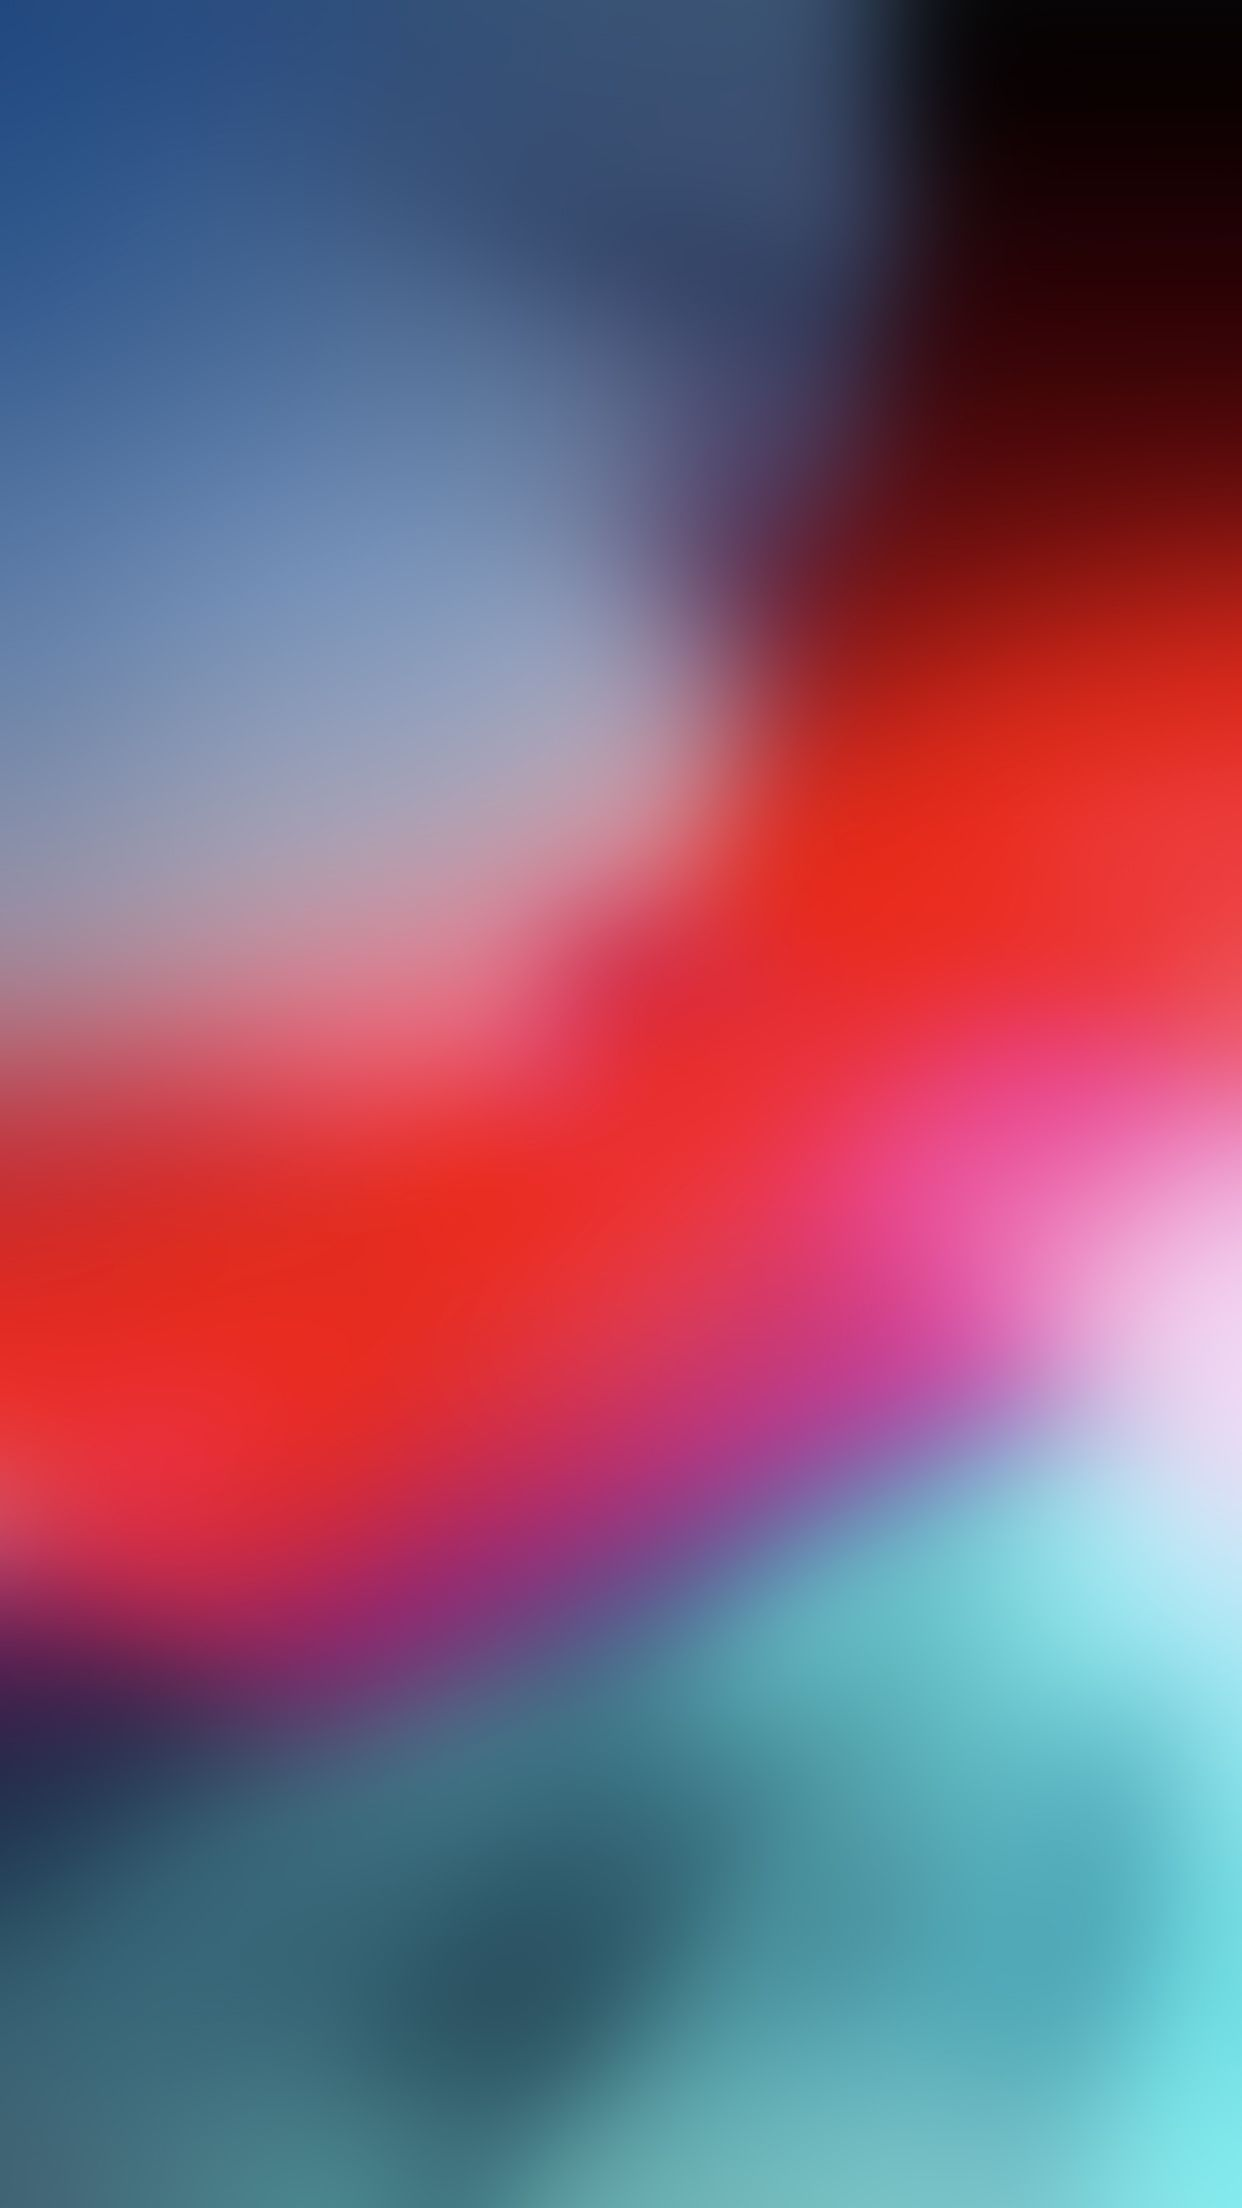 Abstract iphone wallpaper image by Gksel zden on iPhone 678 1242x2208